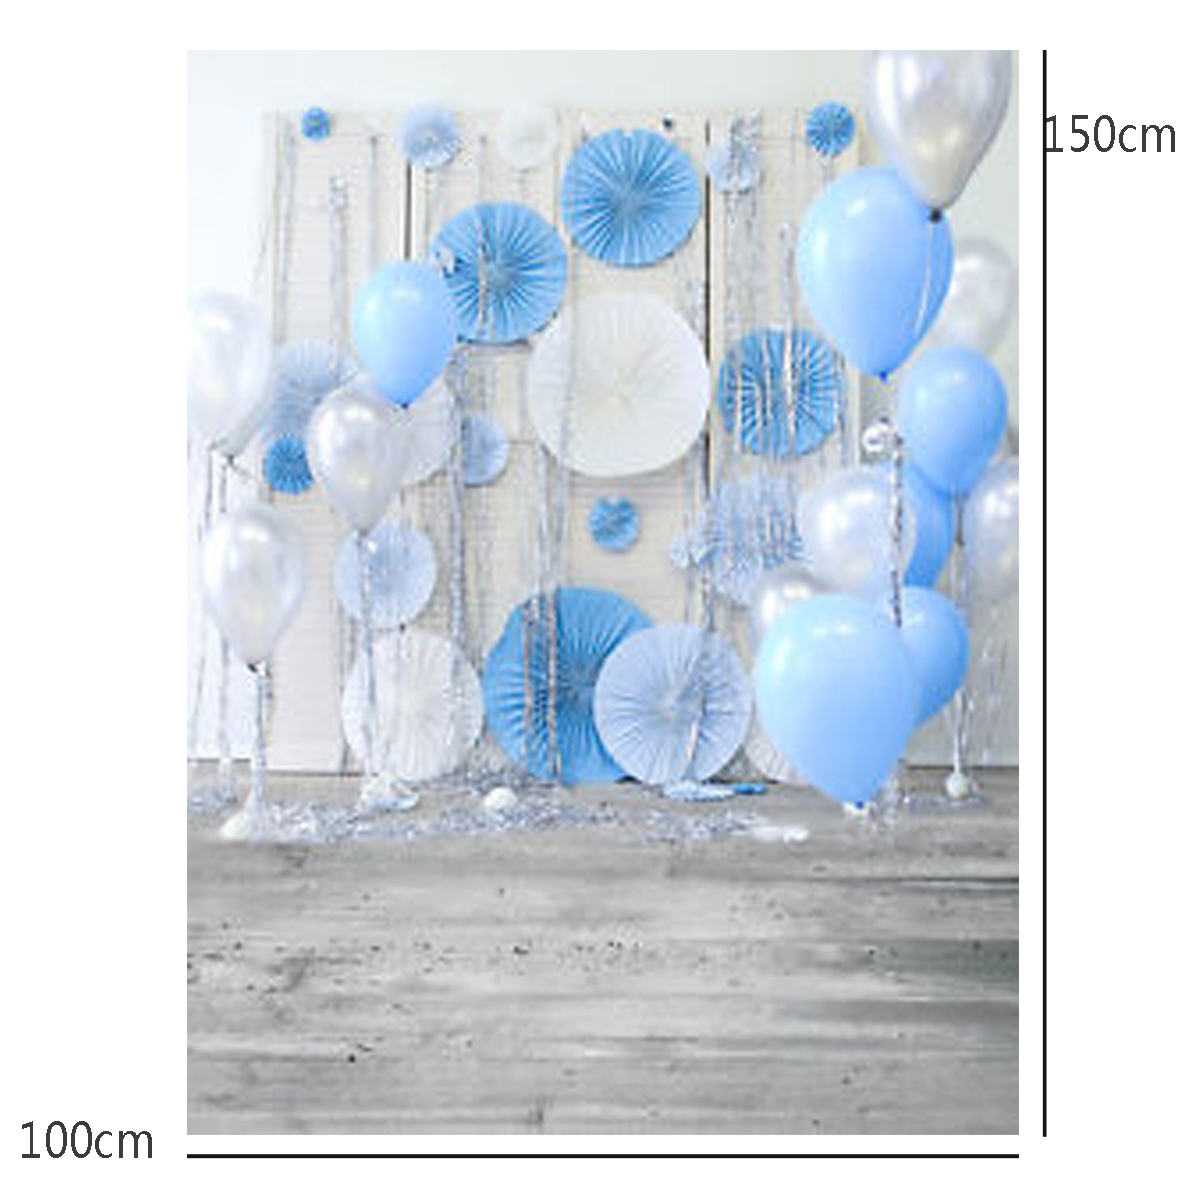 3x5ft Balloon Wall Baby Photography Vinyl Background Board Photo Studio Drops